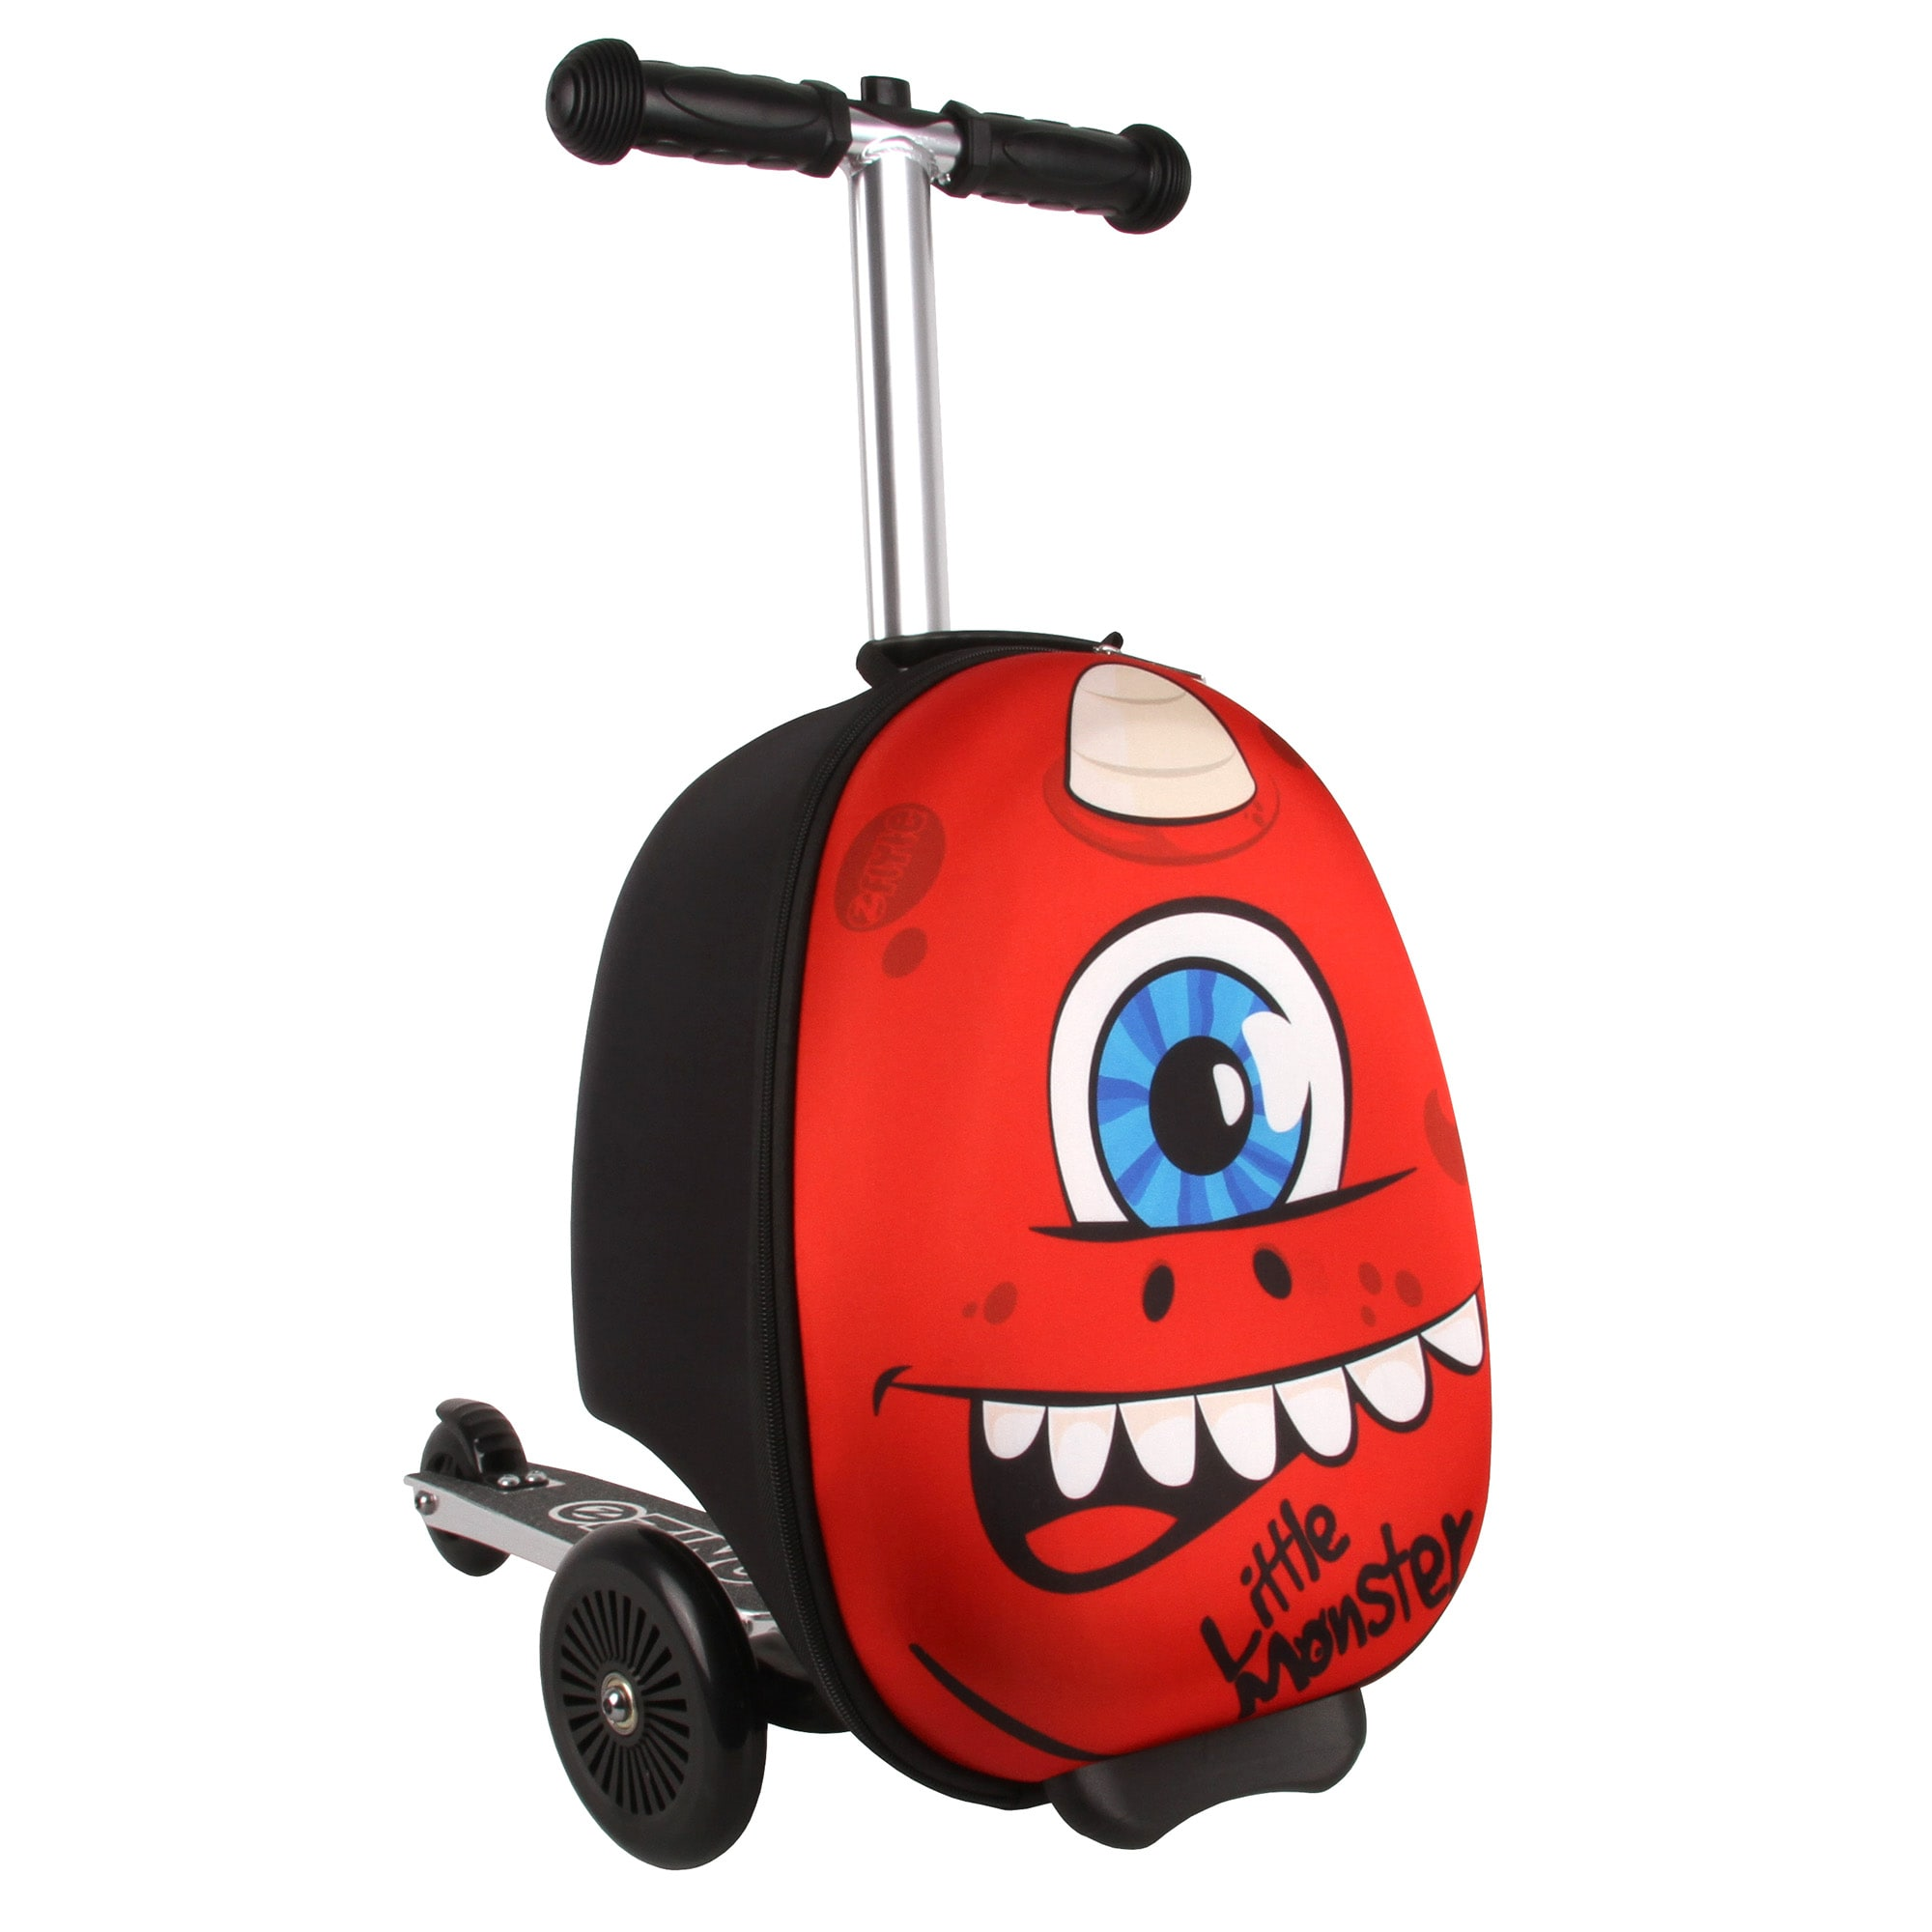 Zinc Flyte Sid The Cyclops Mini Case Scooter  Zinc Flyte Case Scooters For Sale  Zinc Flyte